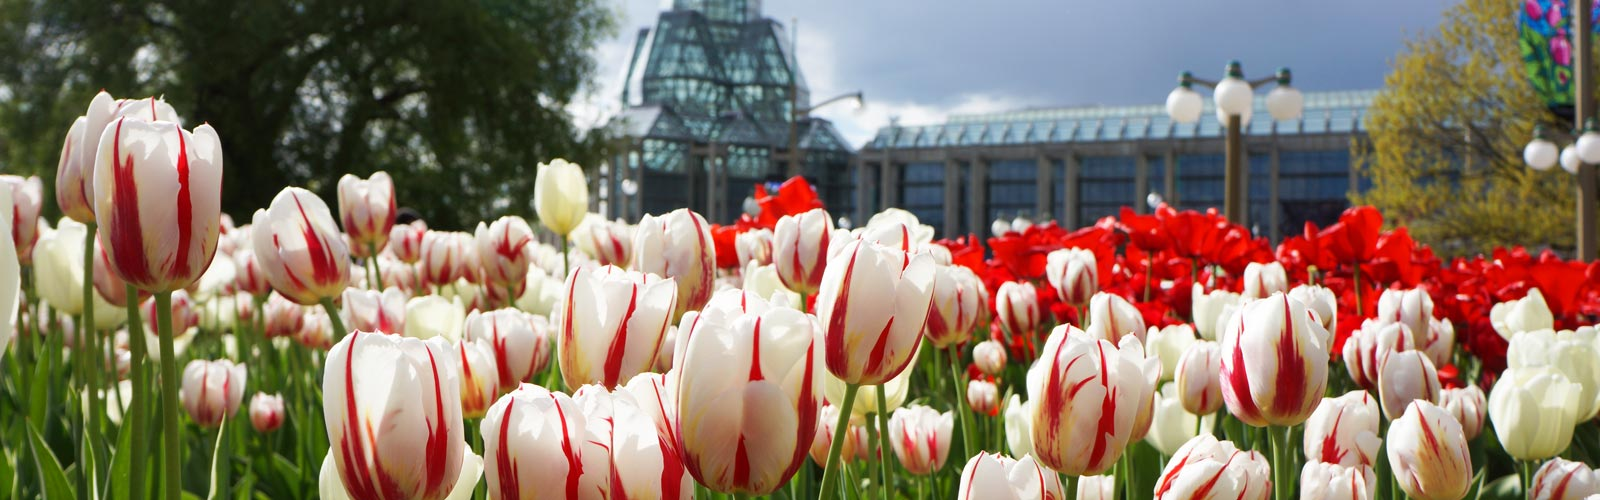 Botanical Celebration of Canada's 150th Birthday